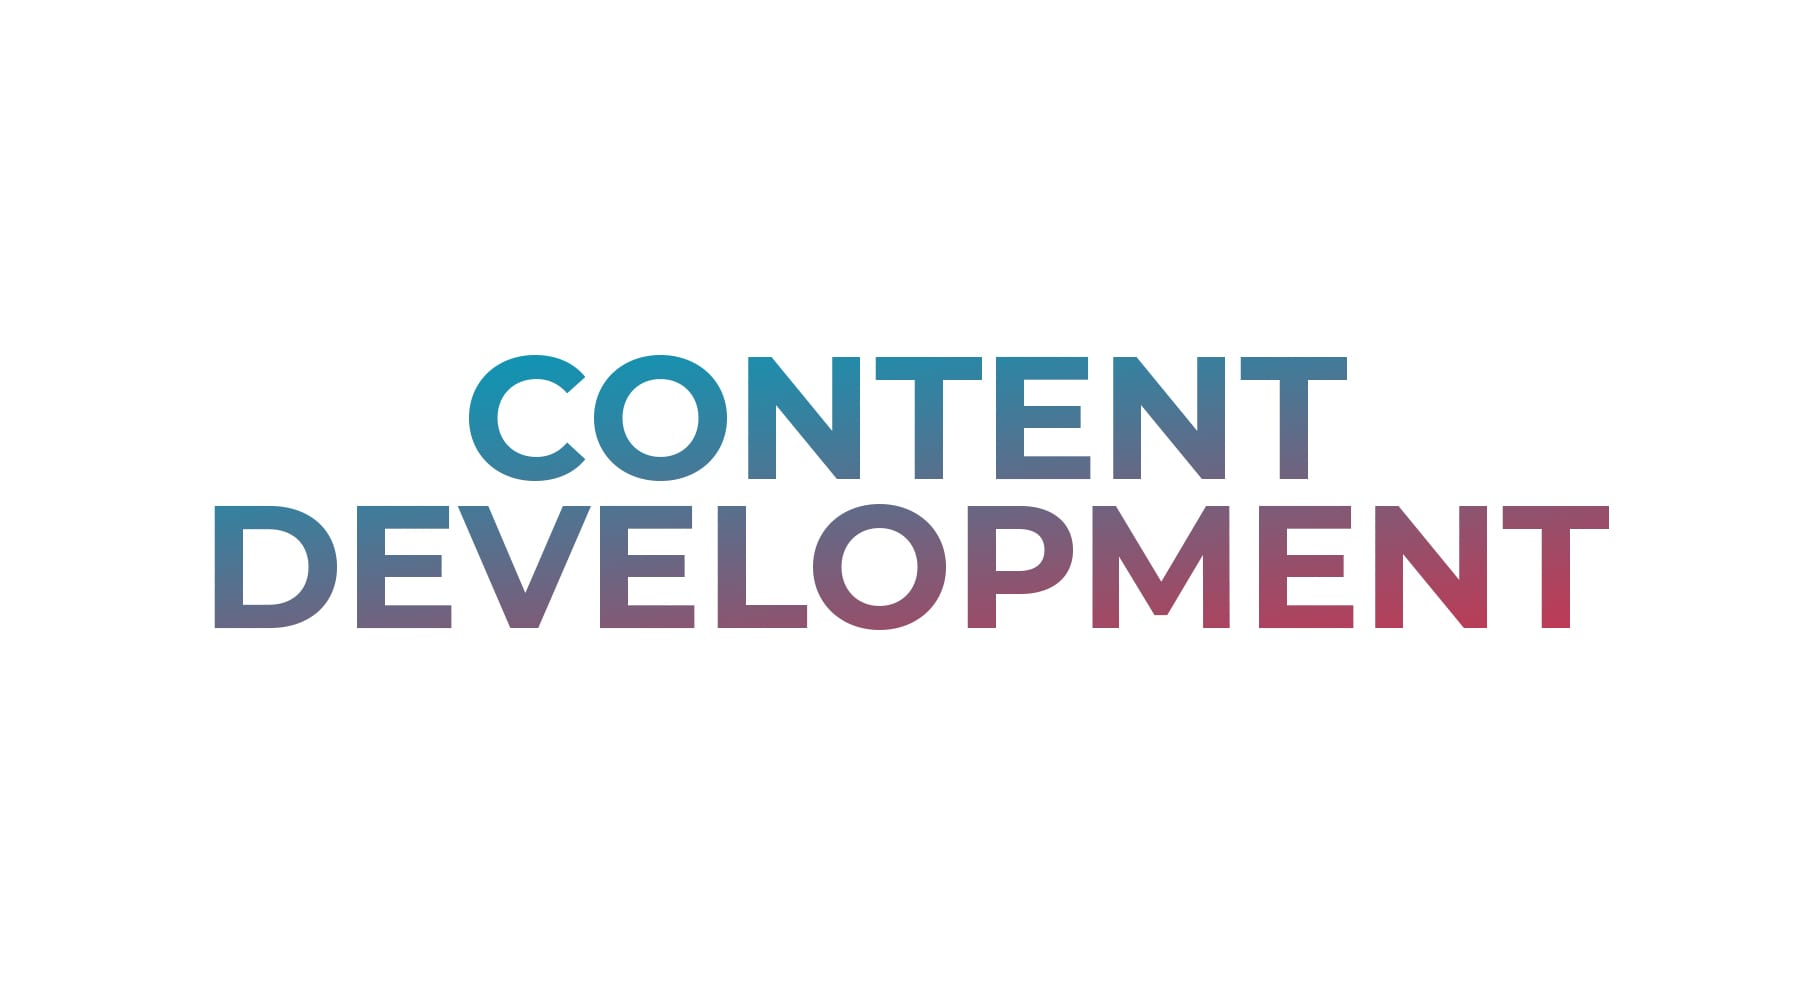 What is content development